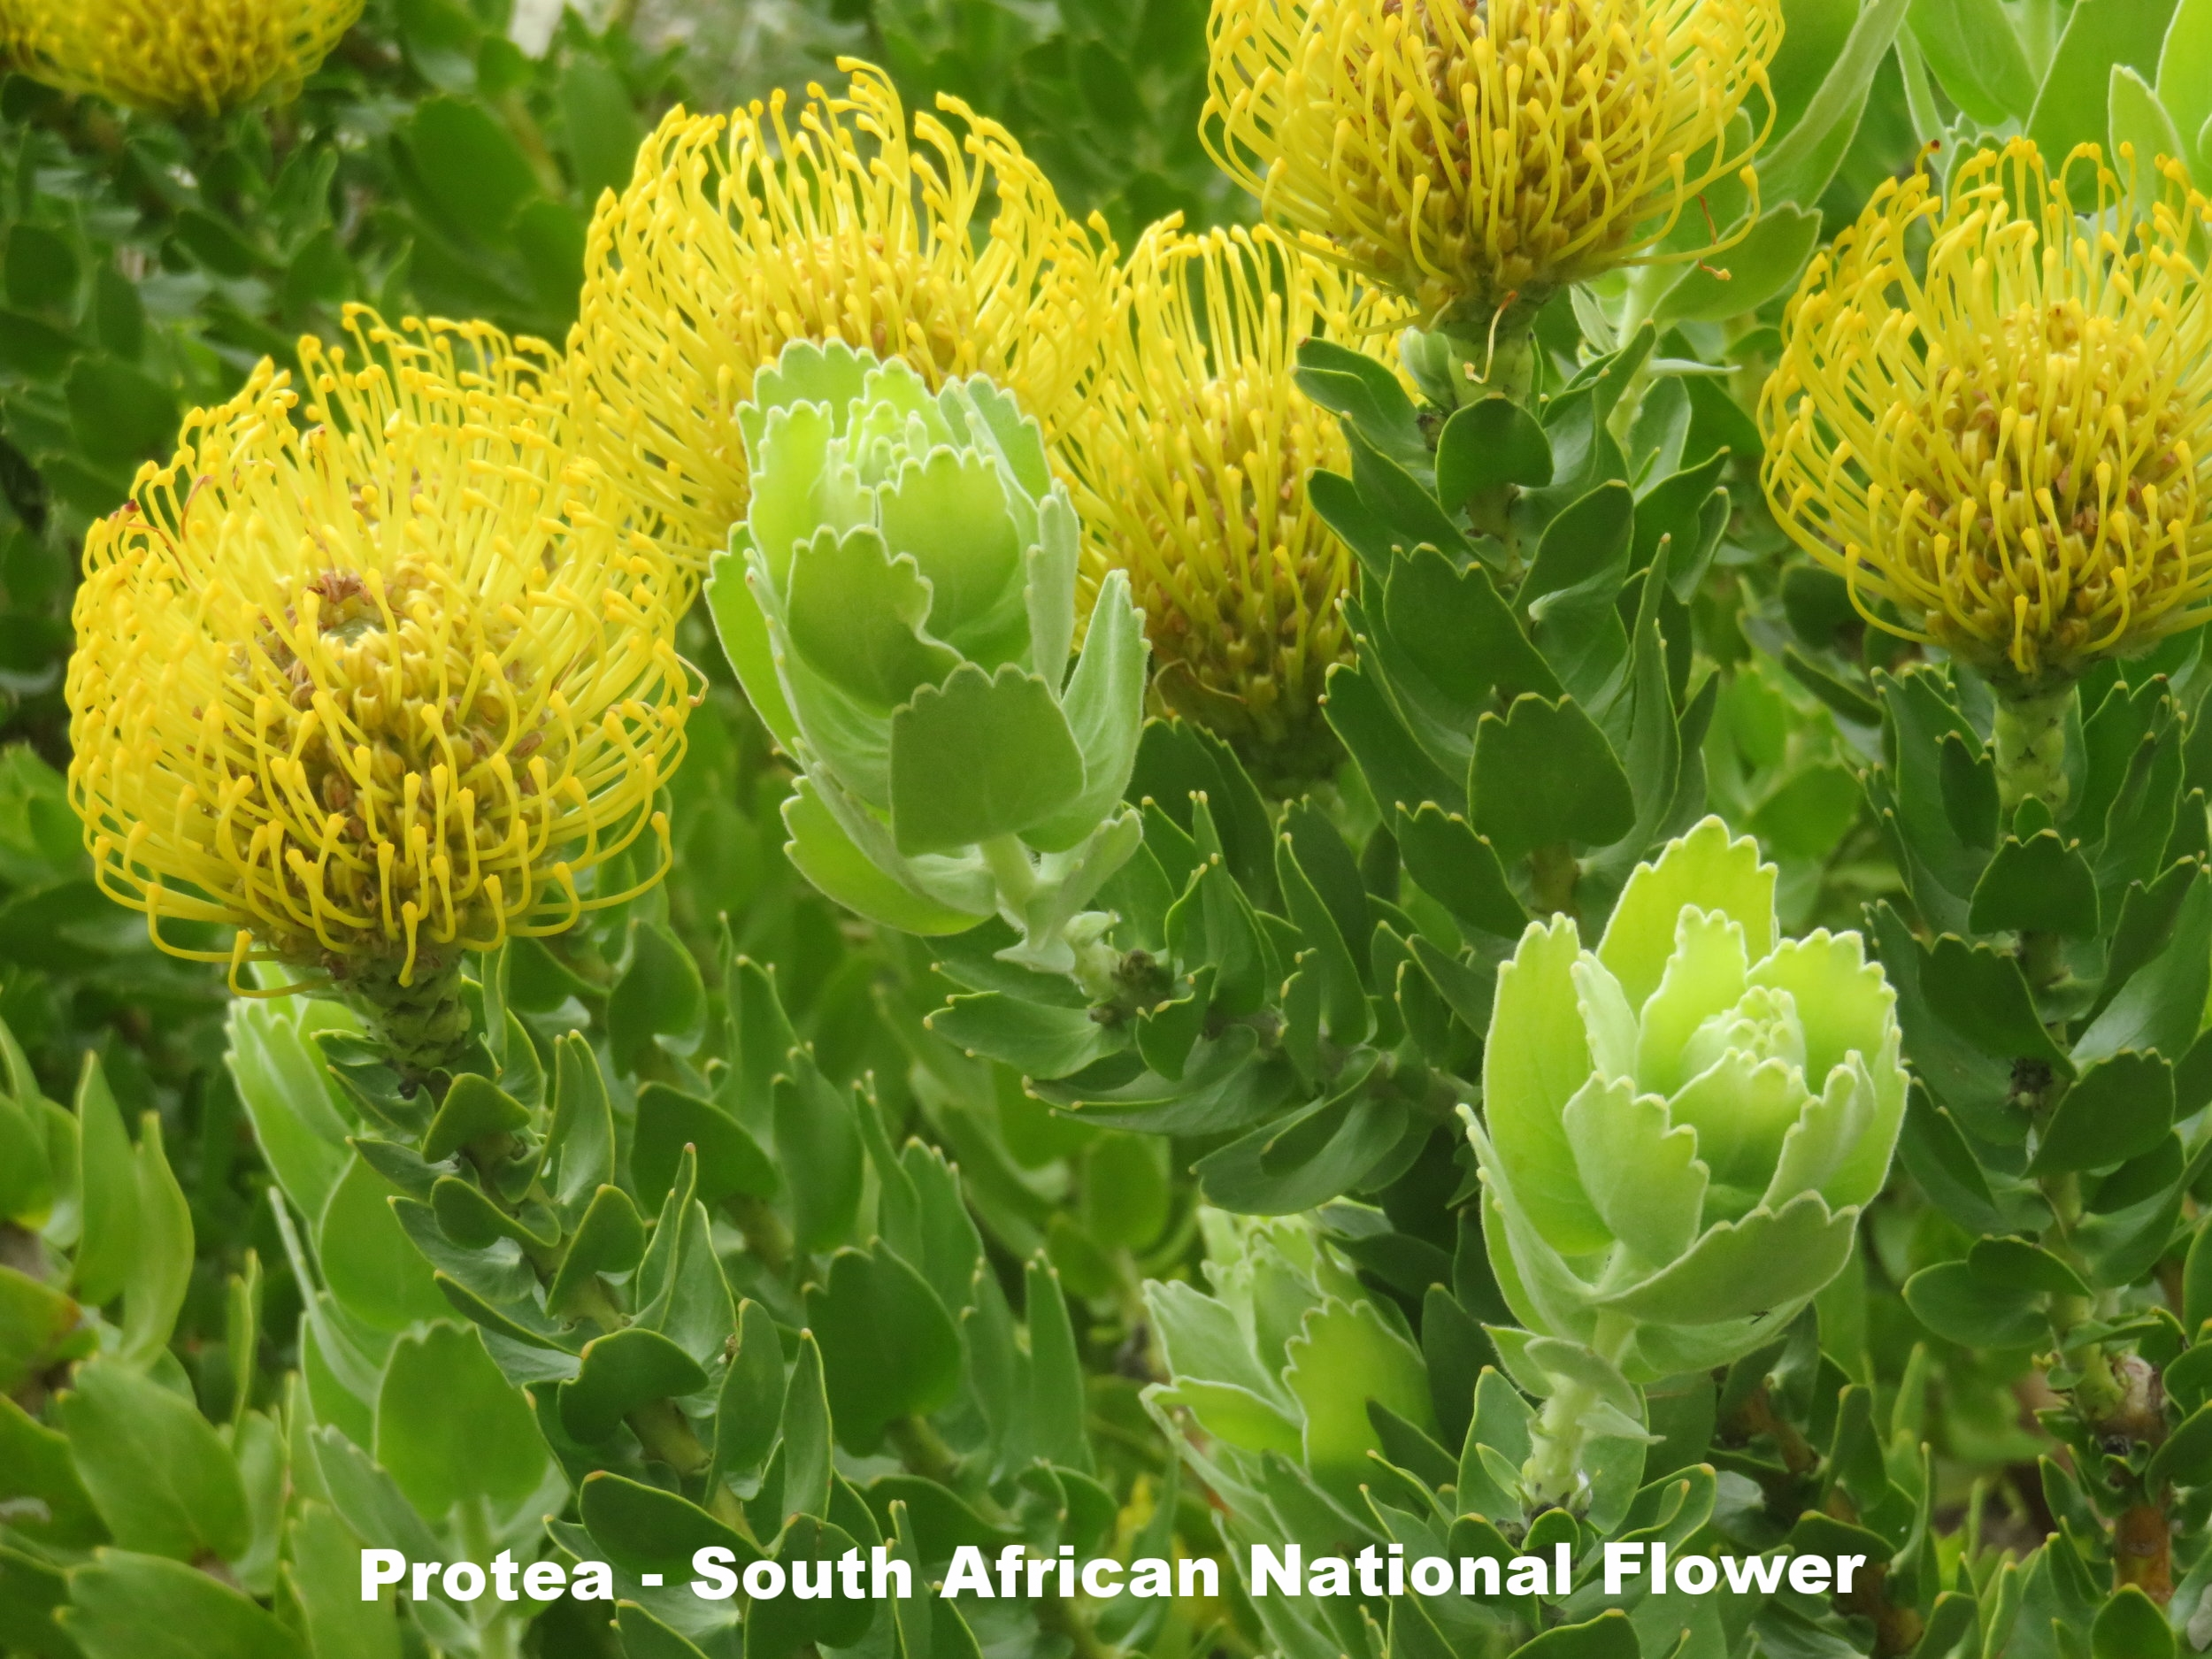 Protea - South African National Flower